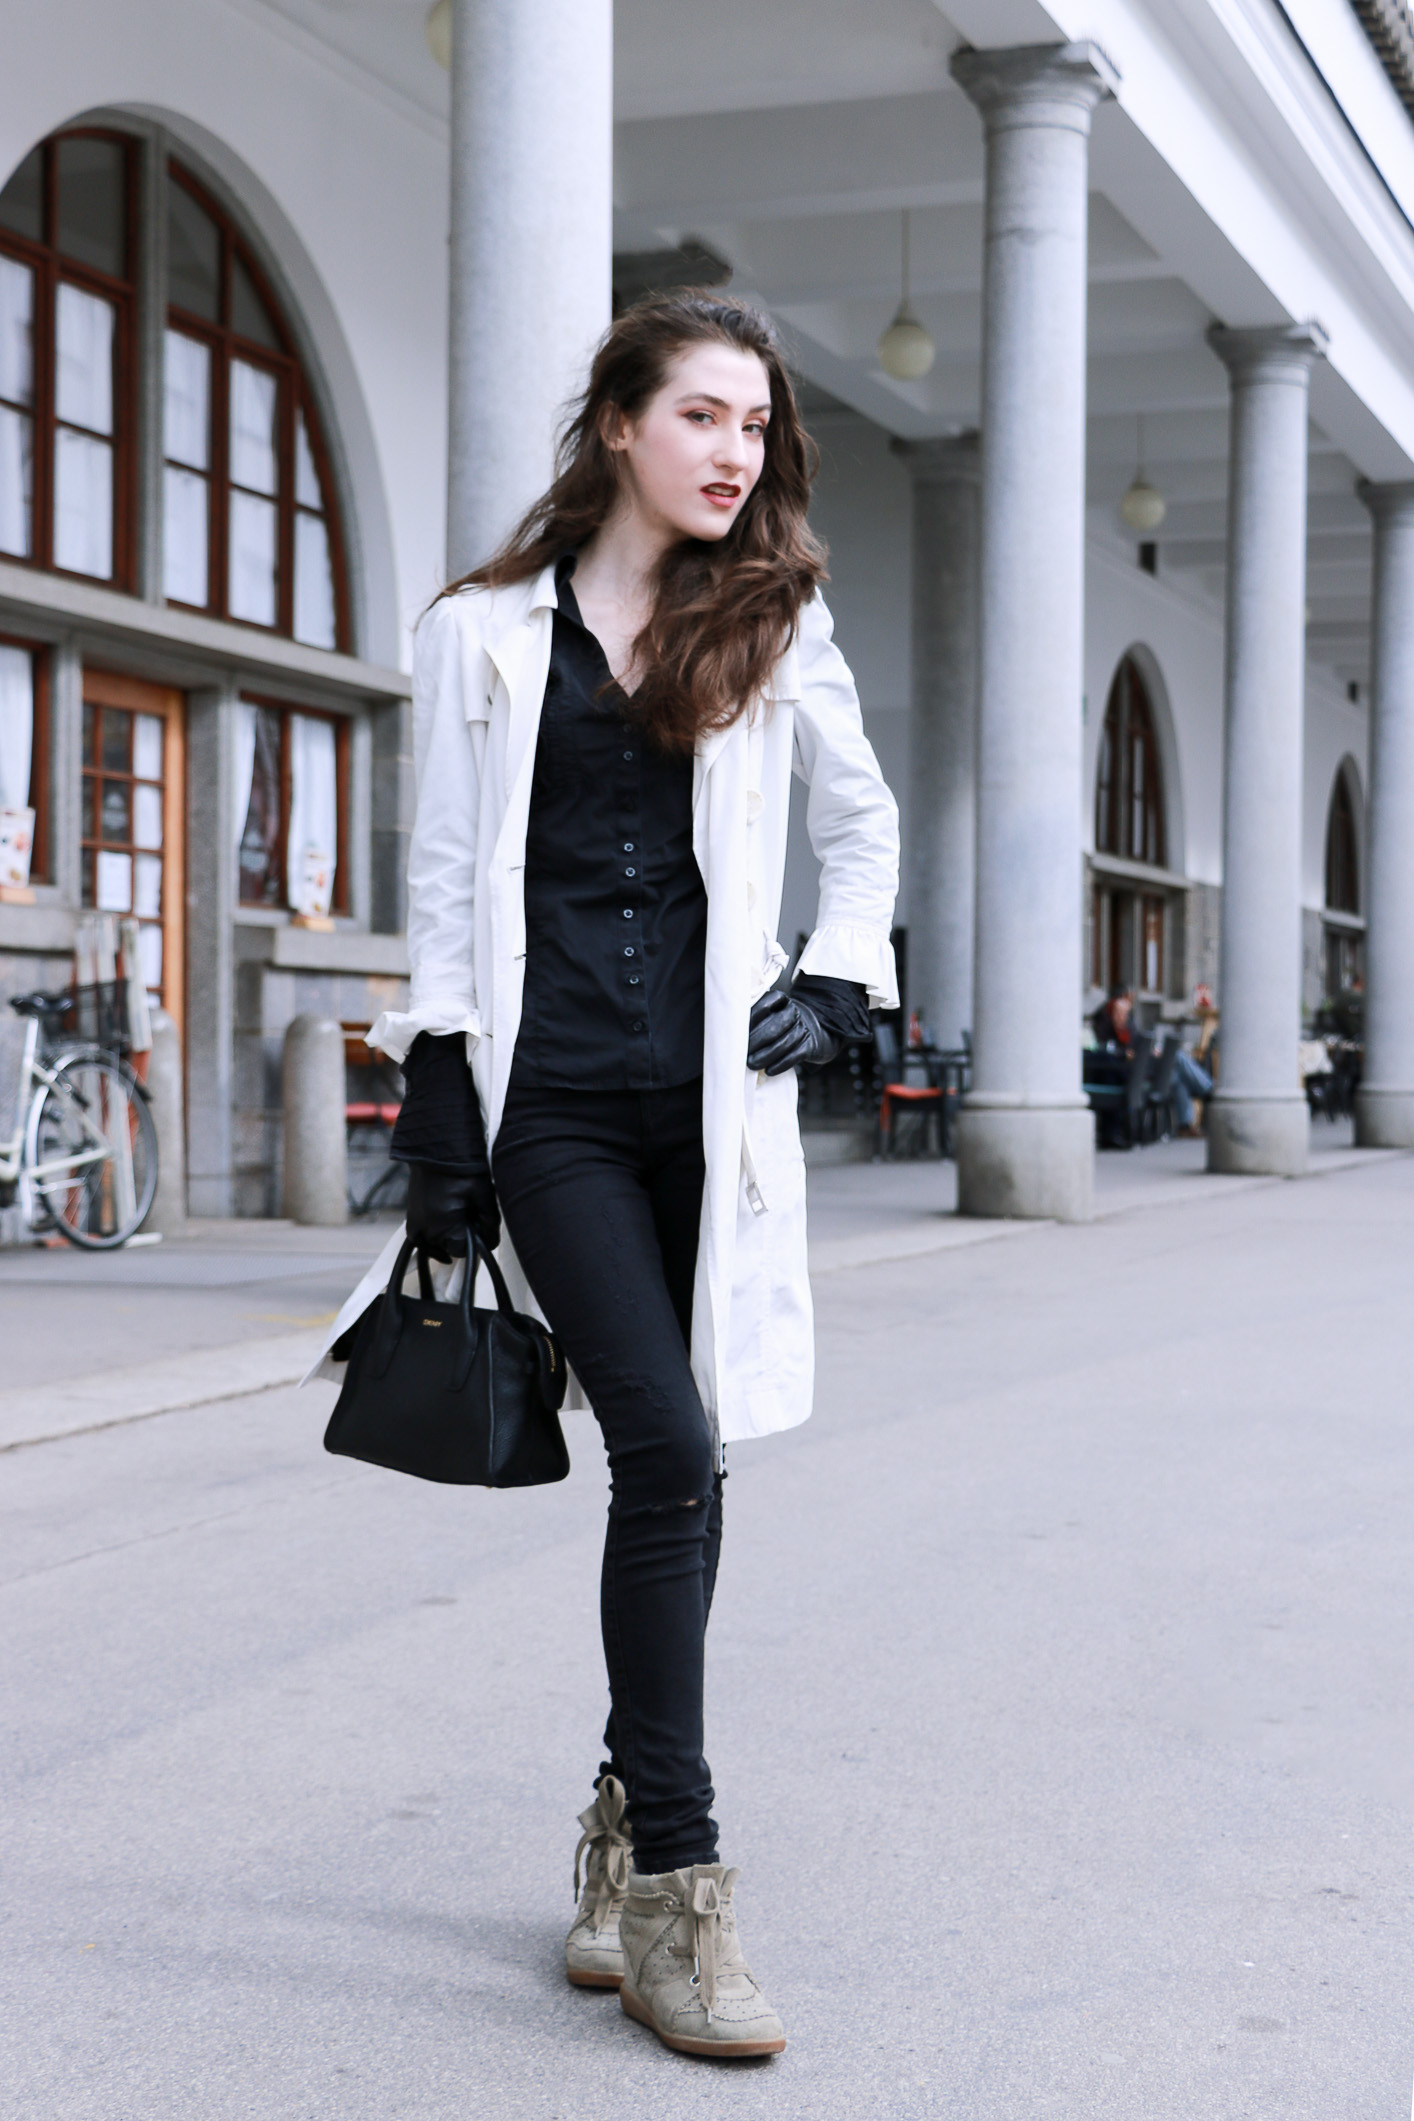 Fashion blogger Veronika Lipar of Brunette From Wall Street sharing her chic black and white ruffled spring look